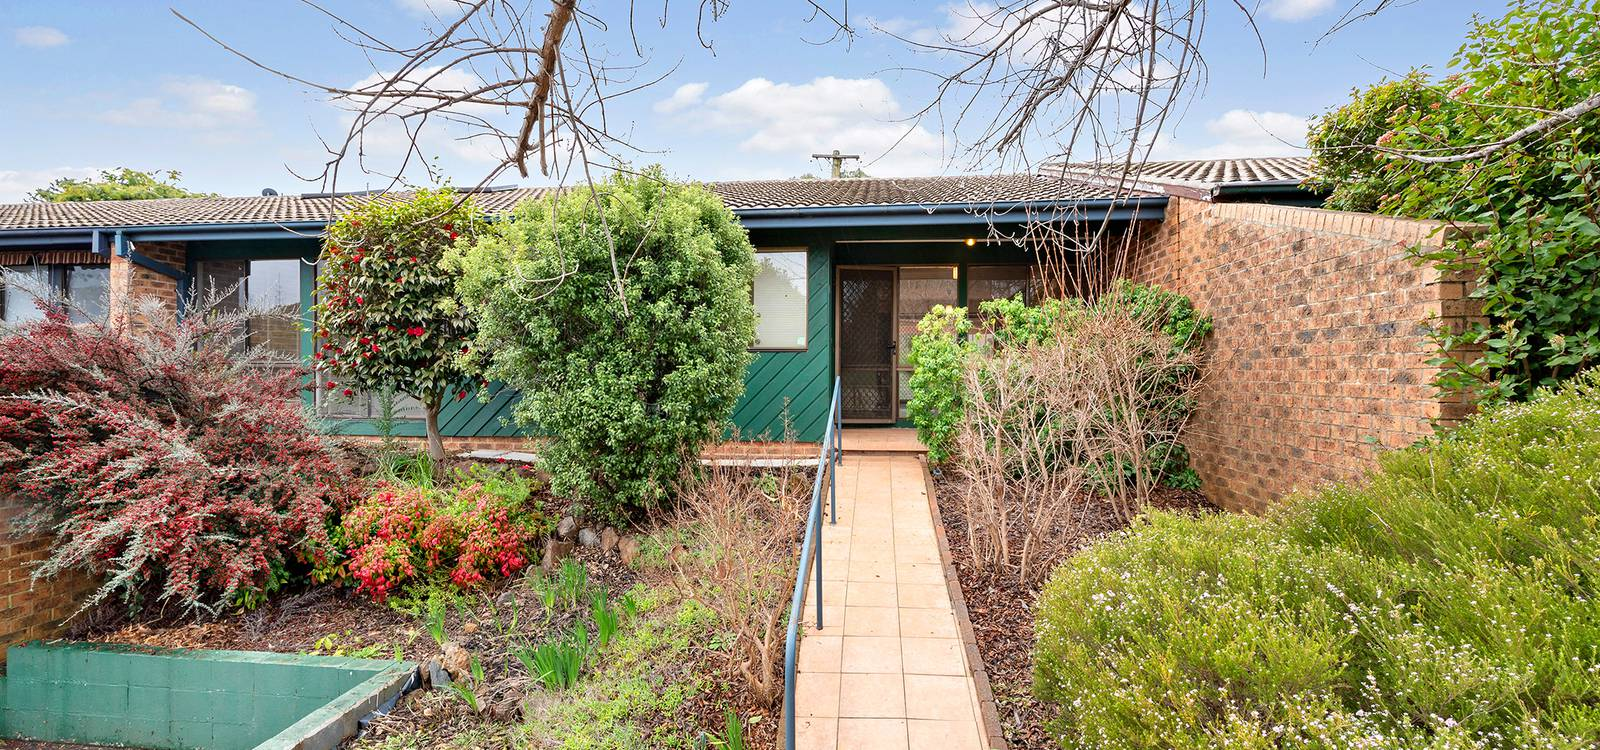 7/26 Chave Street HOLT, ACT 2615 - photo 1